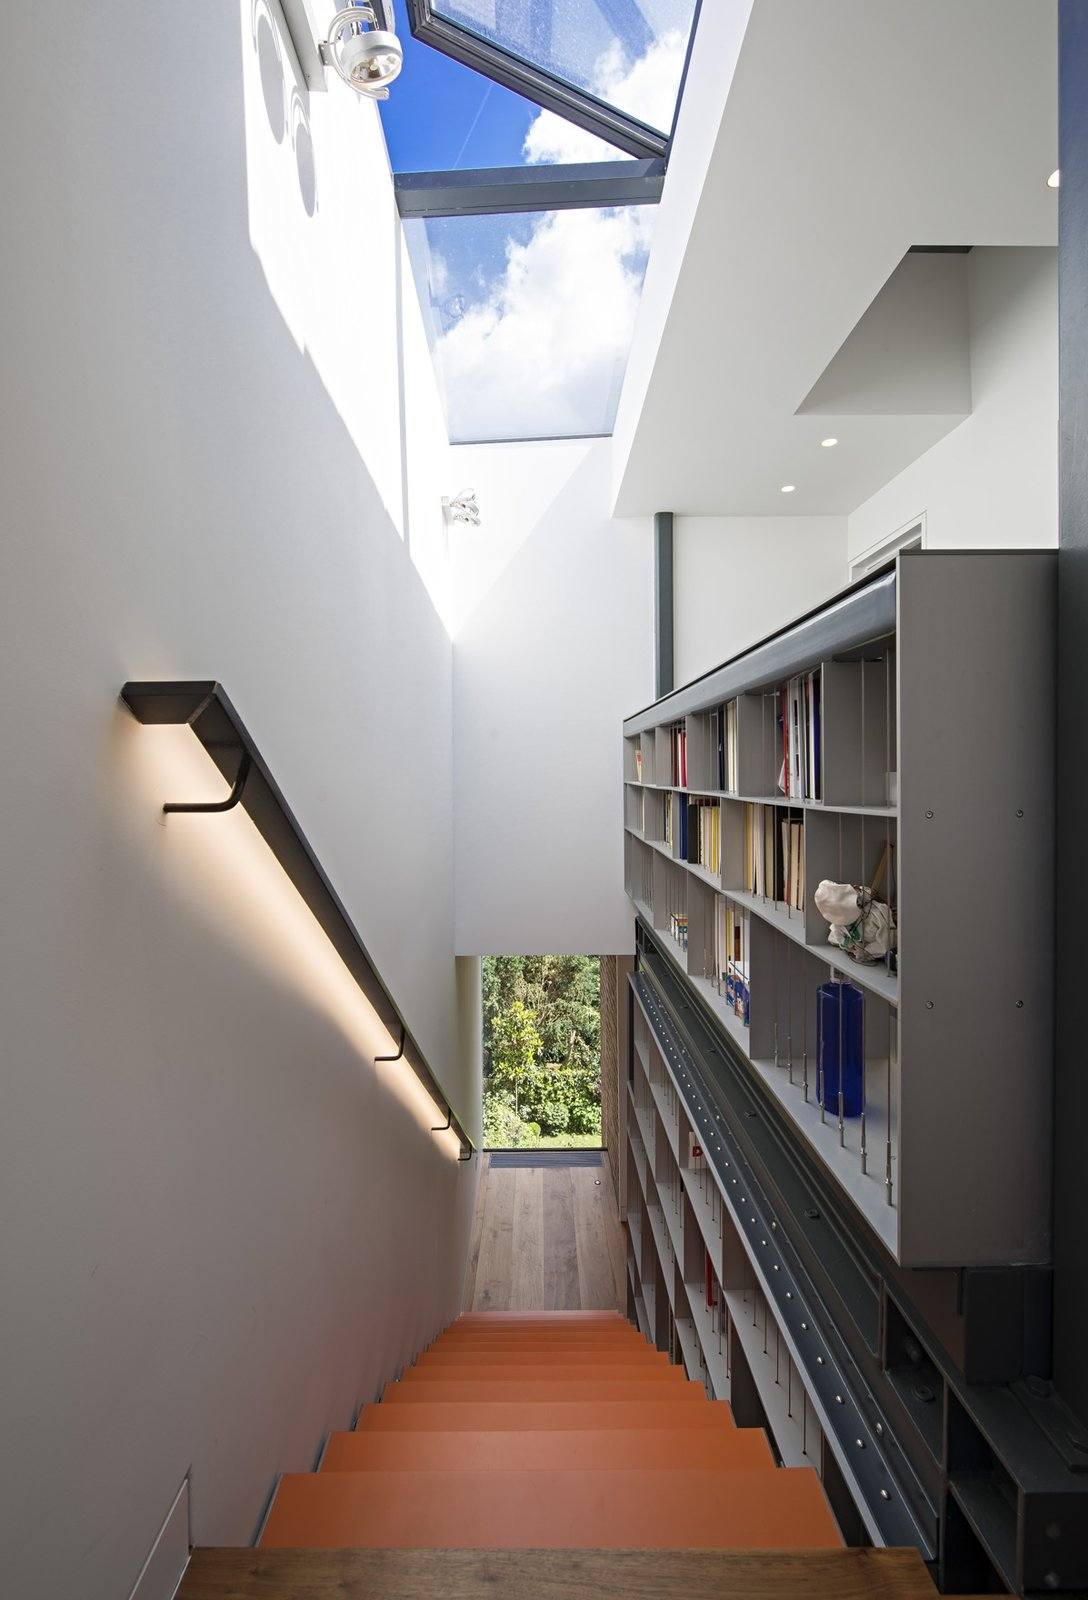 Reaching for the skylight, the five-story staircase is met at the top by the custom bookcase. The skylight opens and closes automatically in response to temperature and weather. This integrated structure is the spine of the house, off of which all other spaces are arranged.  190+ Best Modern Staircase Ideas from This Dramatic London Renovation Boasts a Five-Story Bookcase